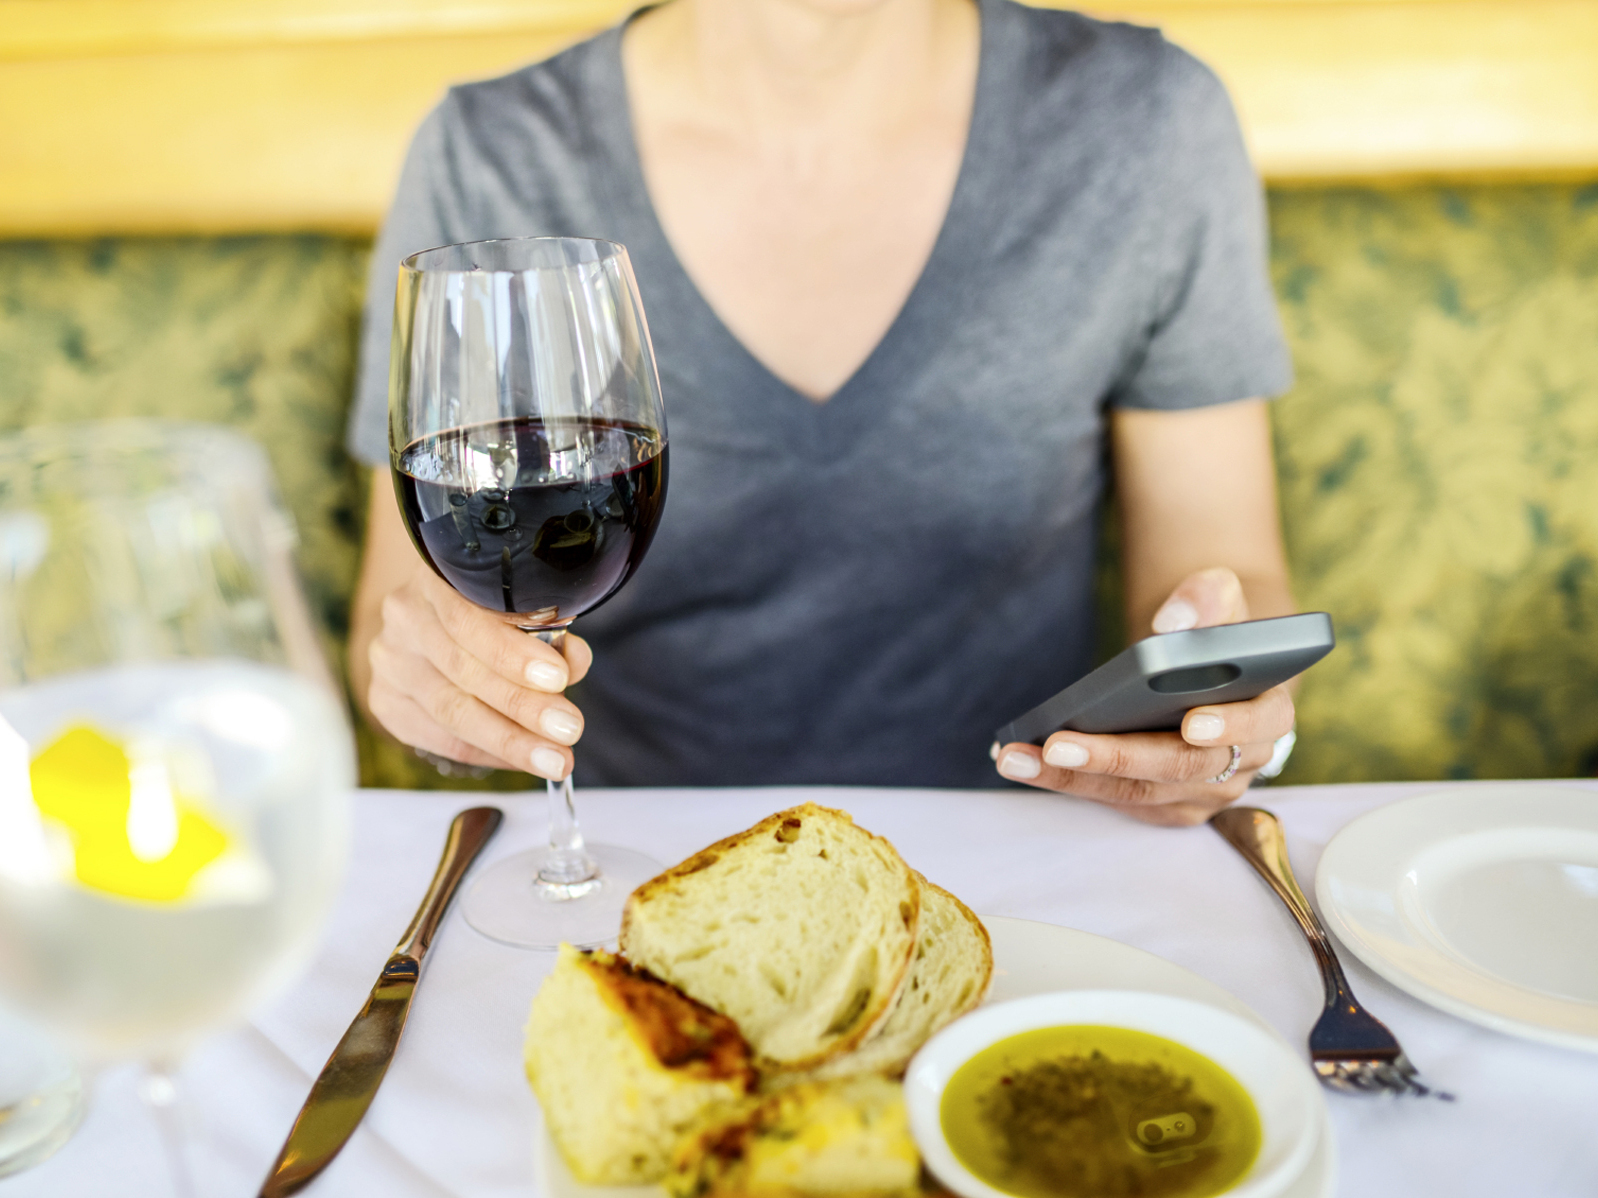 Your Waiter Wants You To Put Down Your Phone